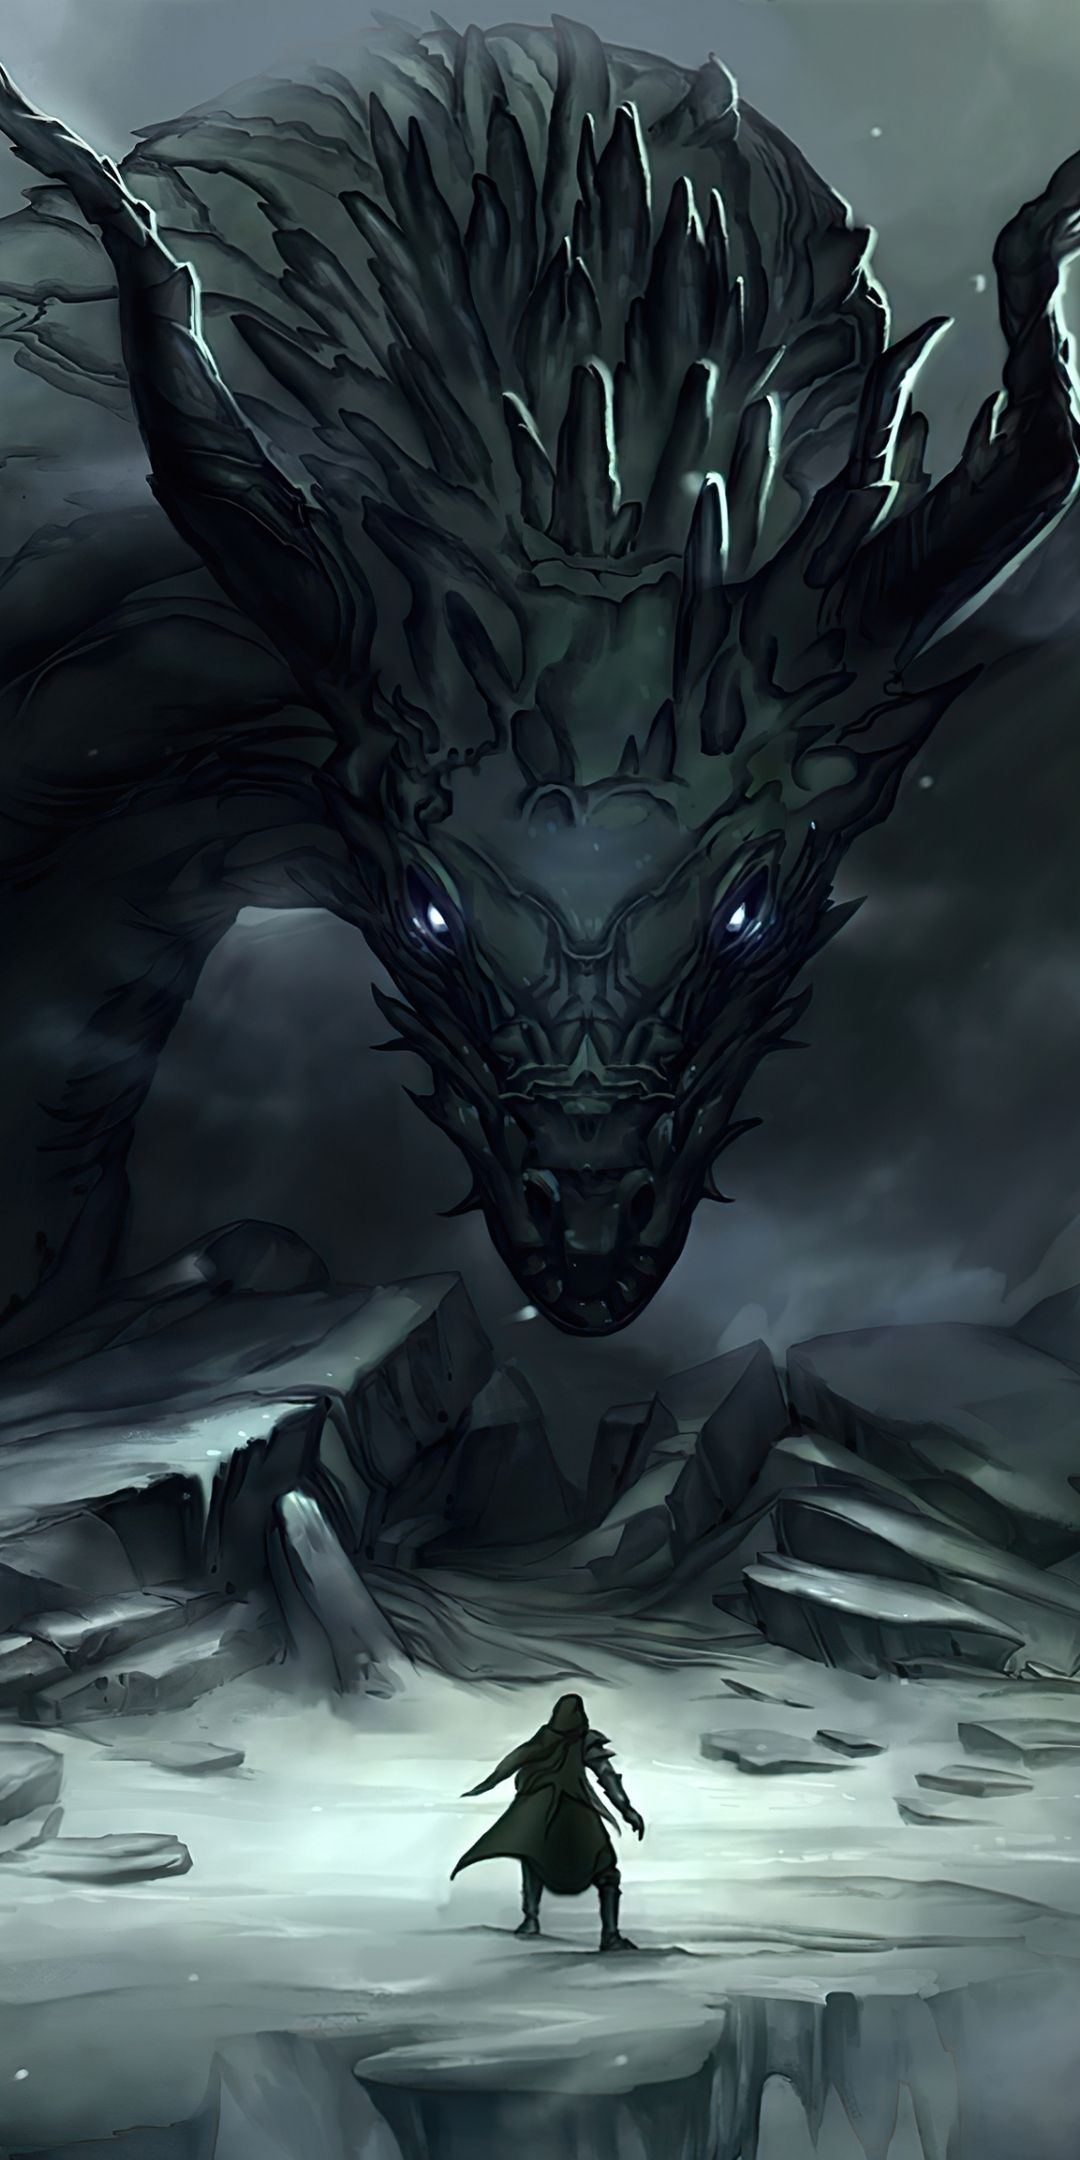 1080x2160 Dragon Master And Dragon Art Fantasy Wallpaper From Android App Dragon Wallpaper Iphone Cool Wallpapers For Phones Phone Wallpaper Images